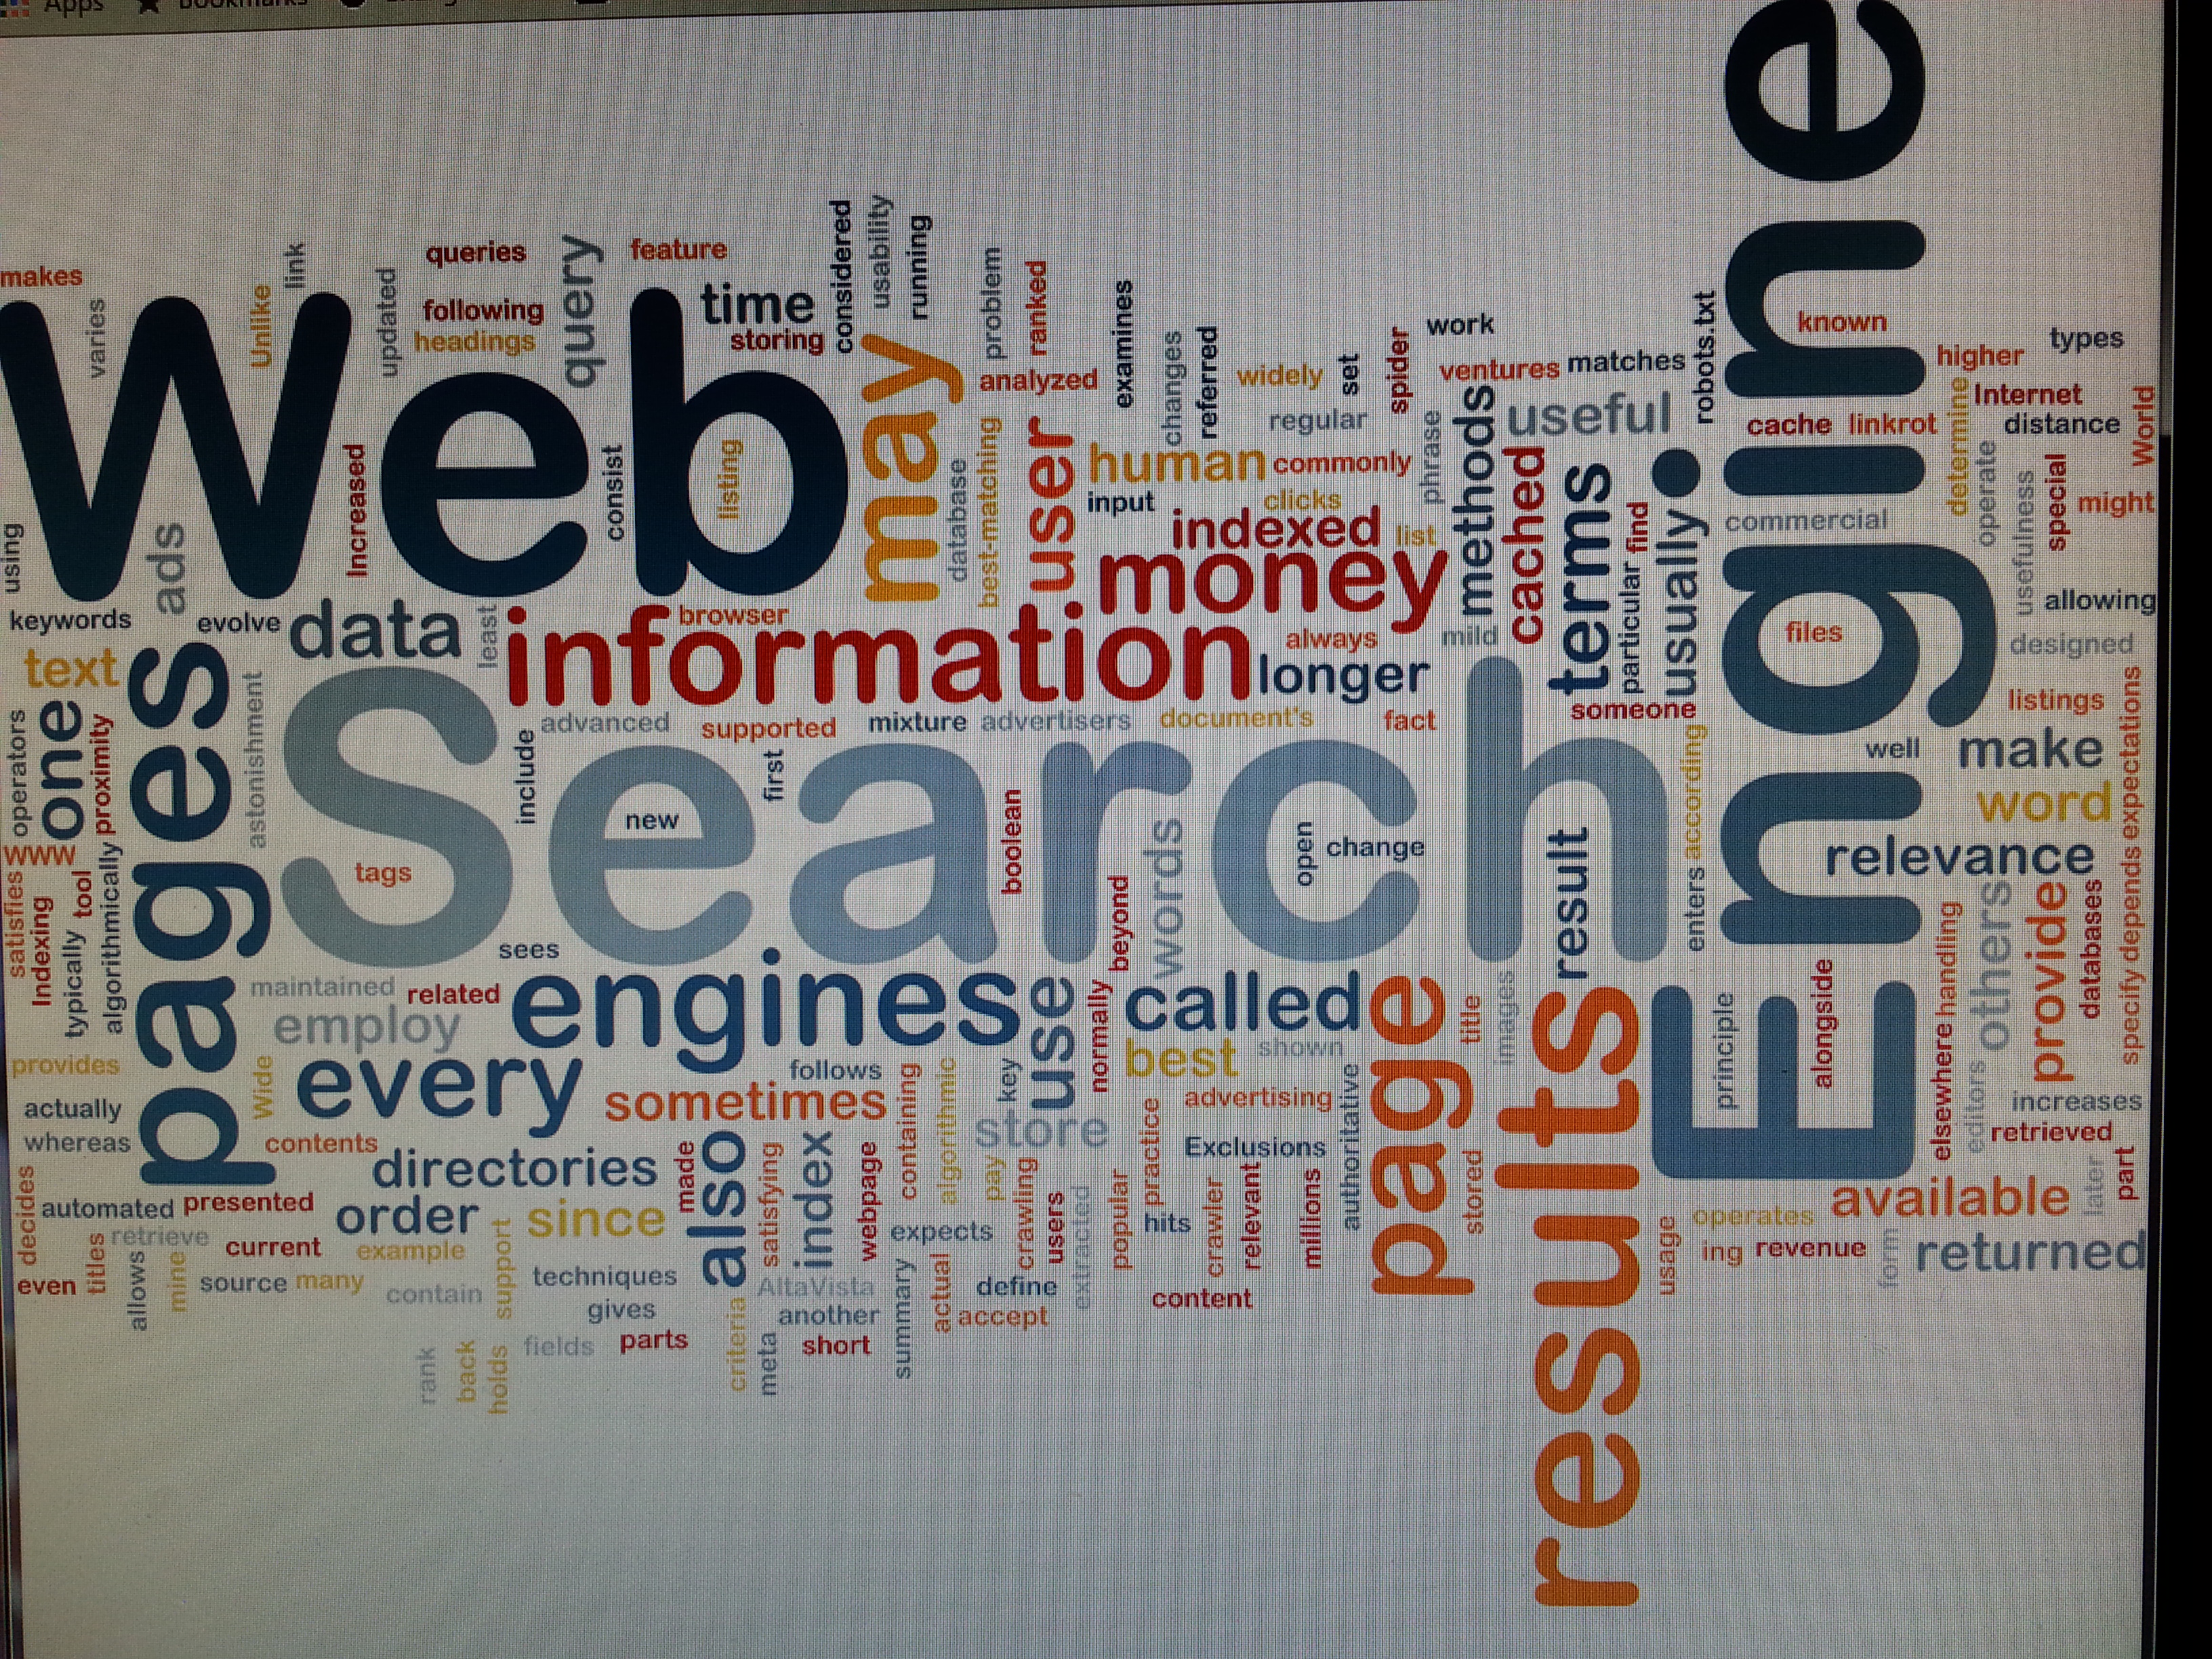 Search the internet for what you need!